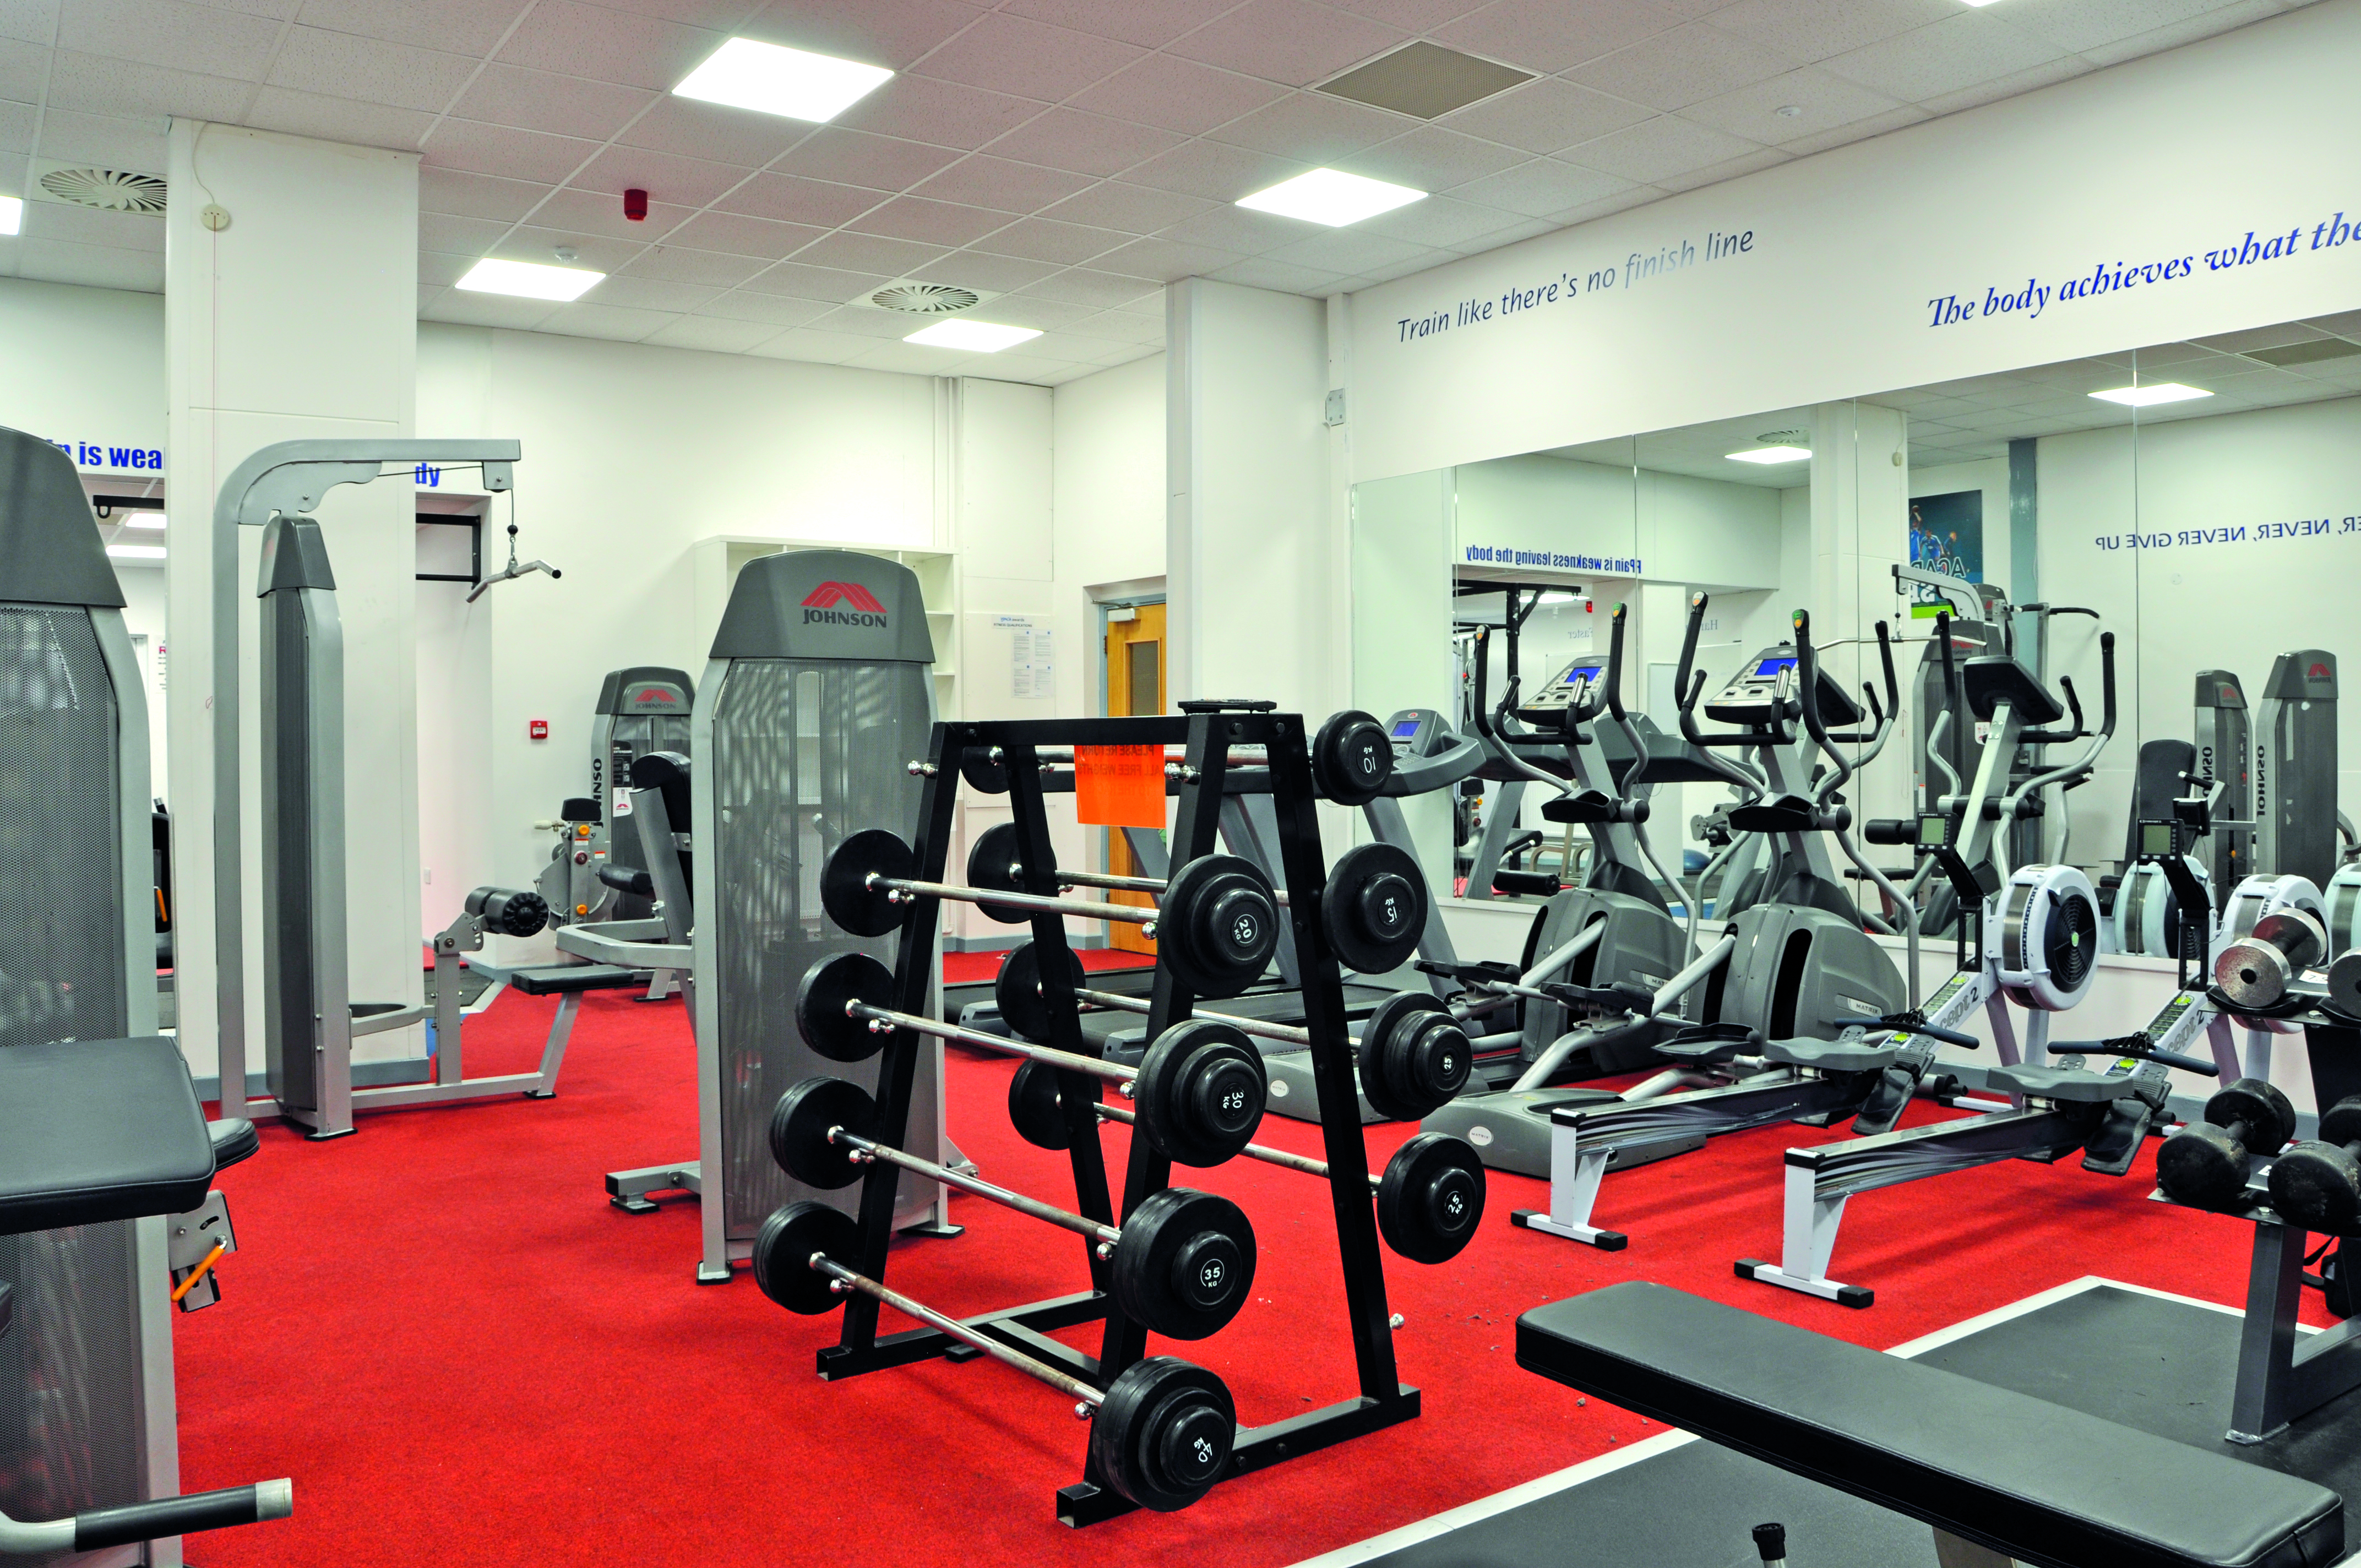 Fitness suite, climbing wall, full-size football pitches and netball courts